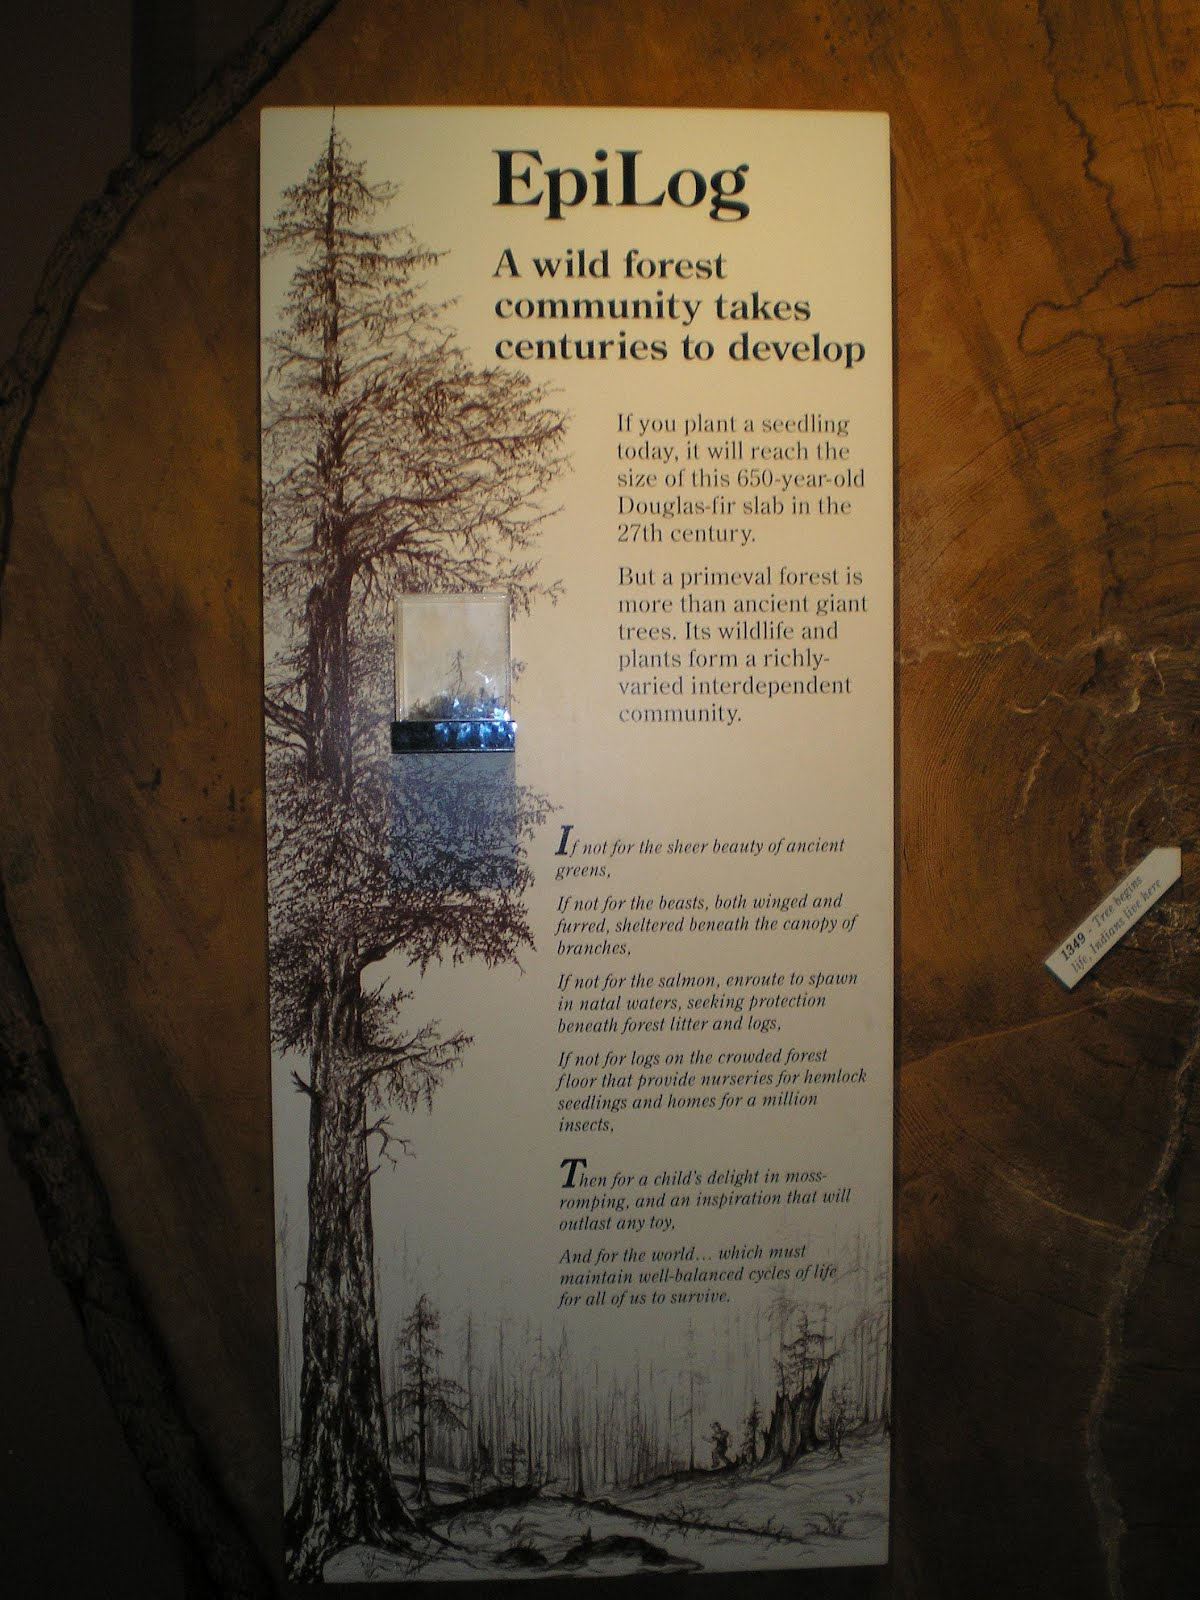 A king-sized Douglas fir log at the Hurricane Visitor Center in Olympic Natl Park. & The Road Genealogist: Selected Olympic Peninsula Photos